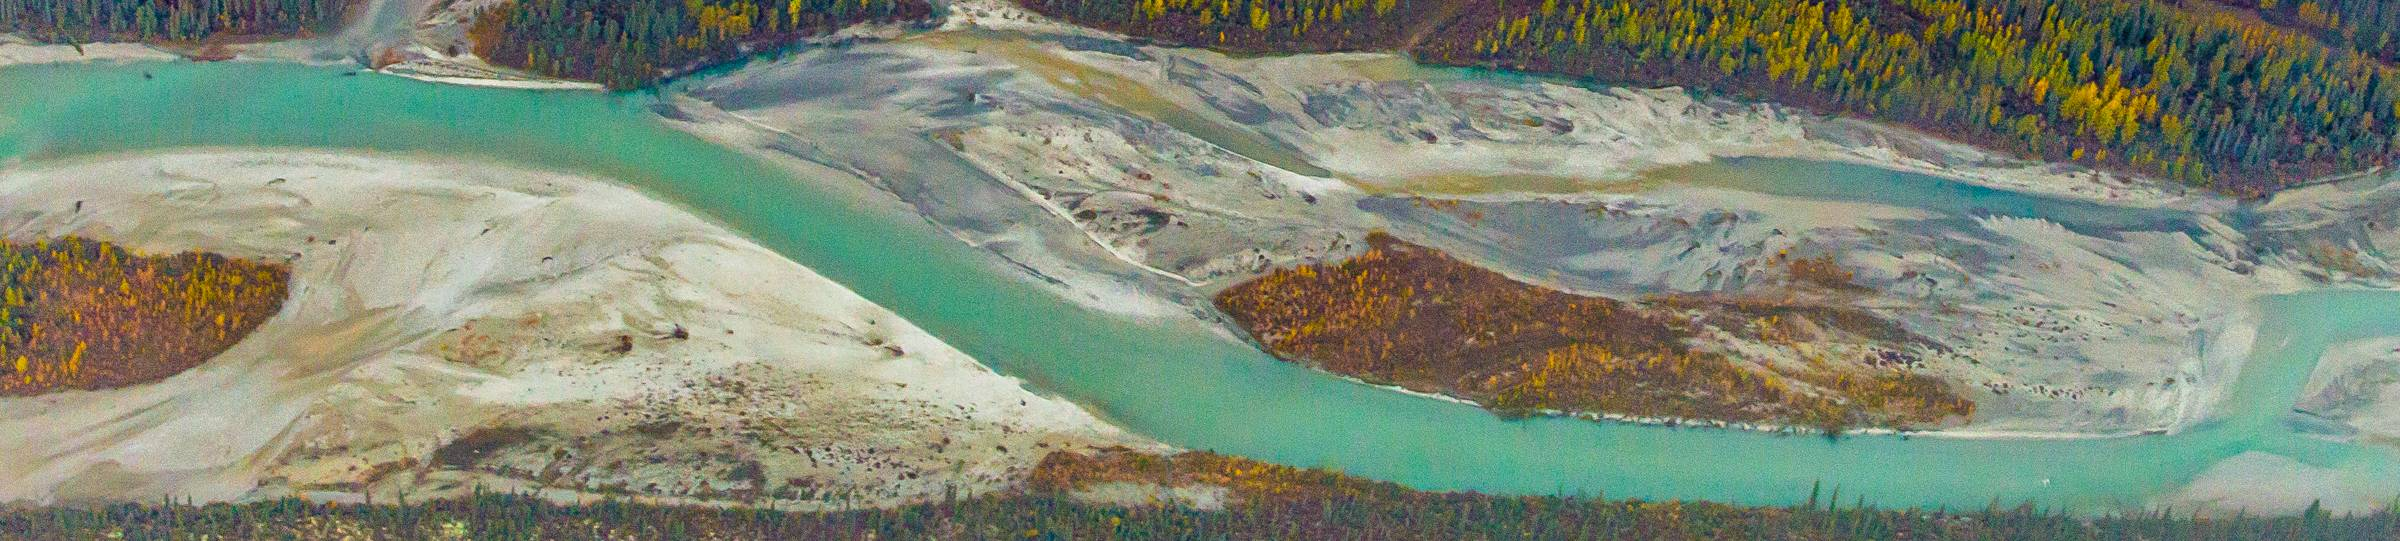 Landscape_river_from_above